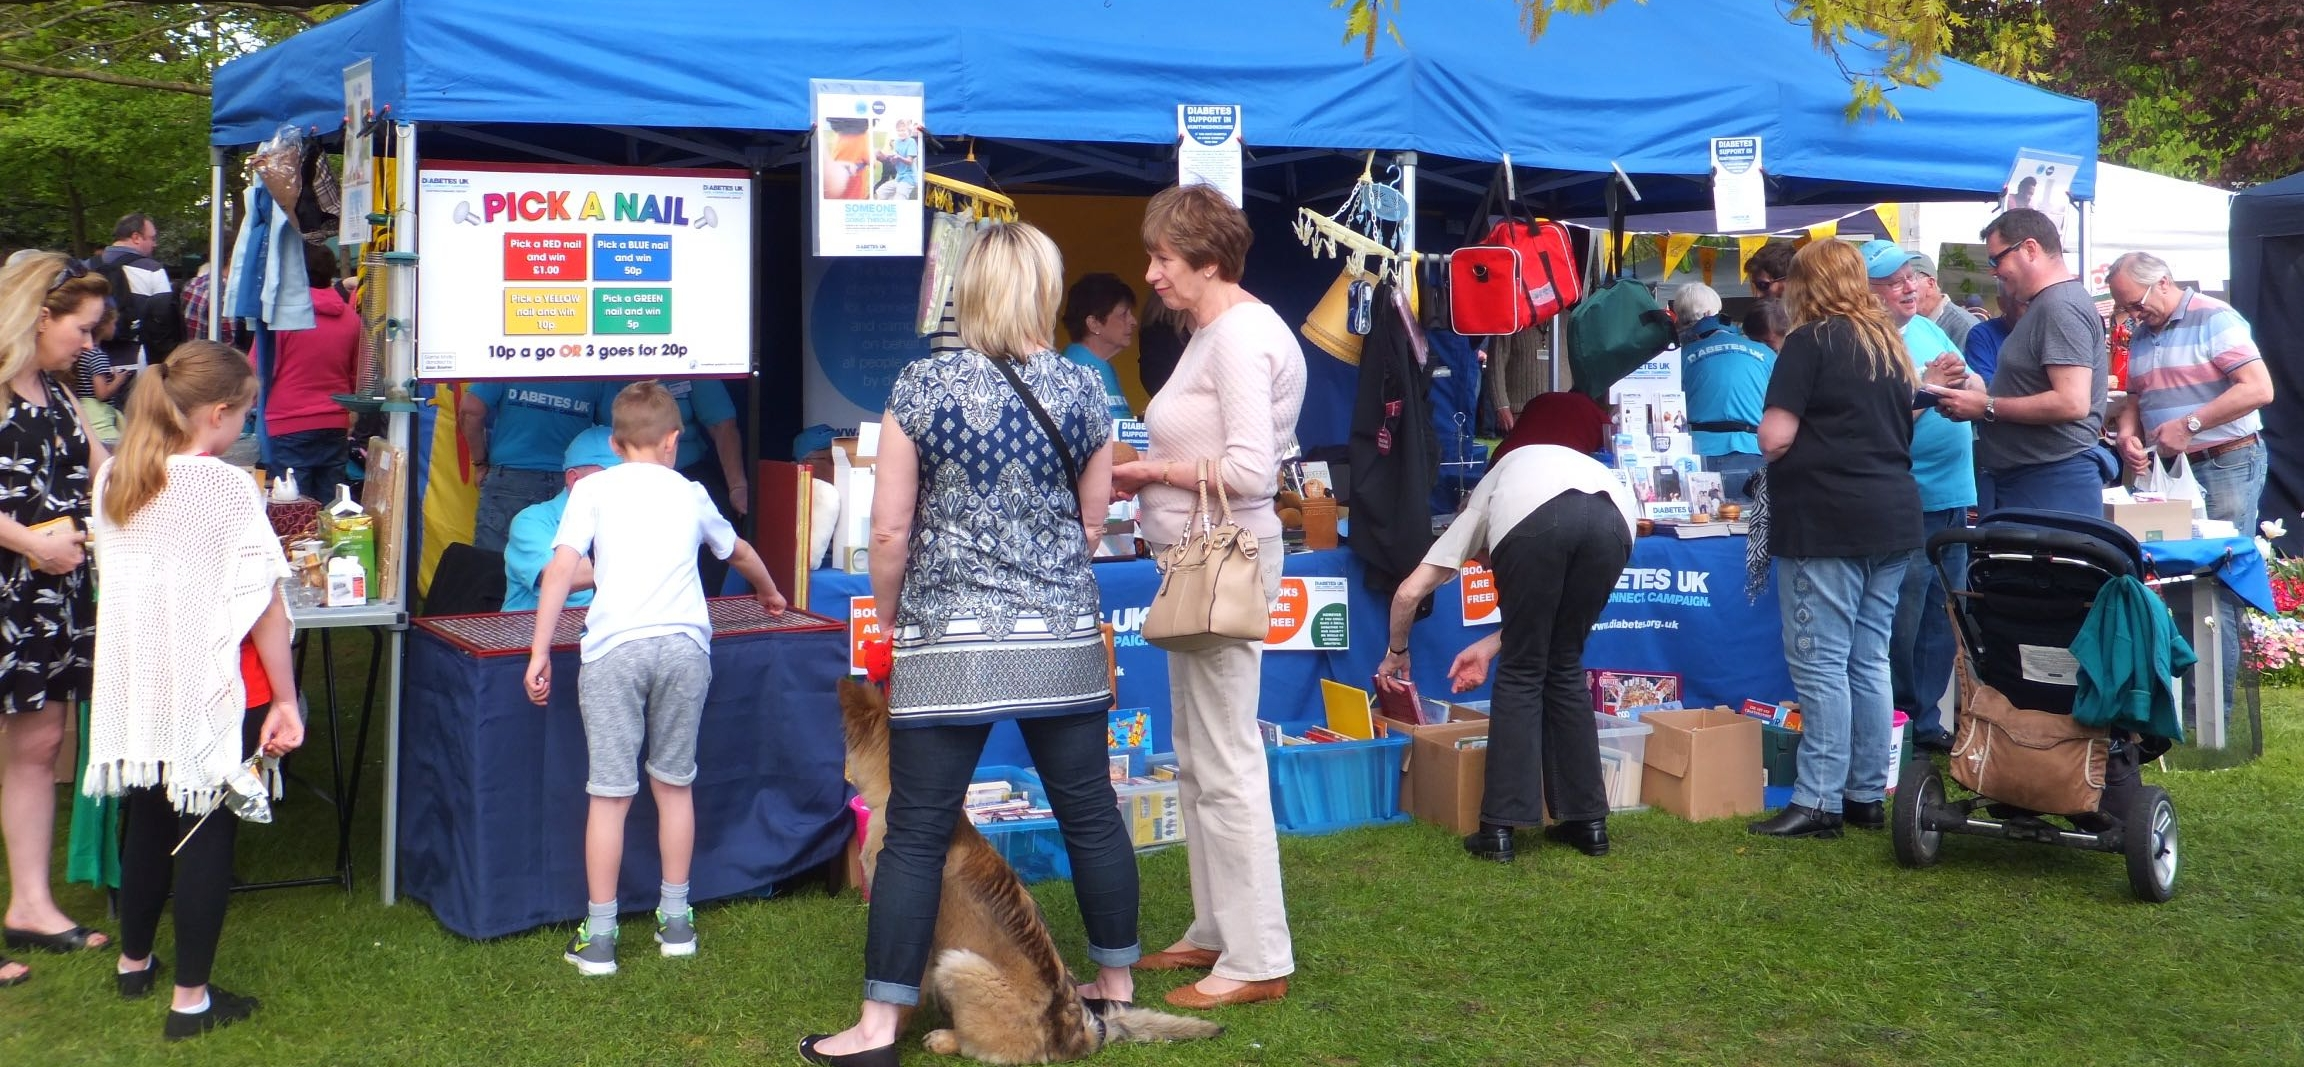 Eaton Socon Village Fete, May 2015